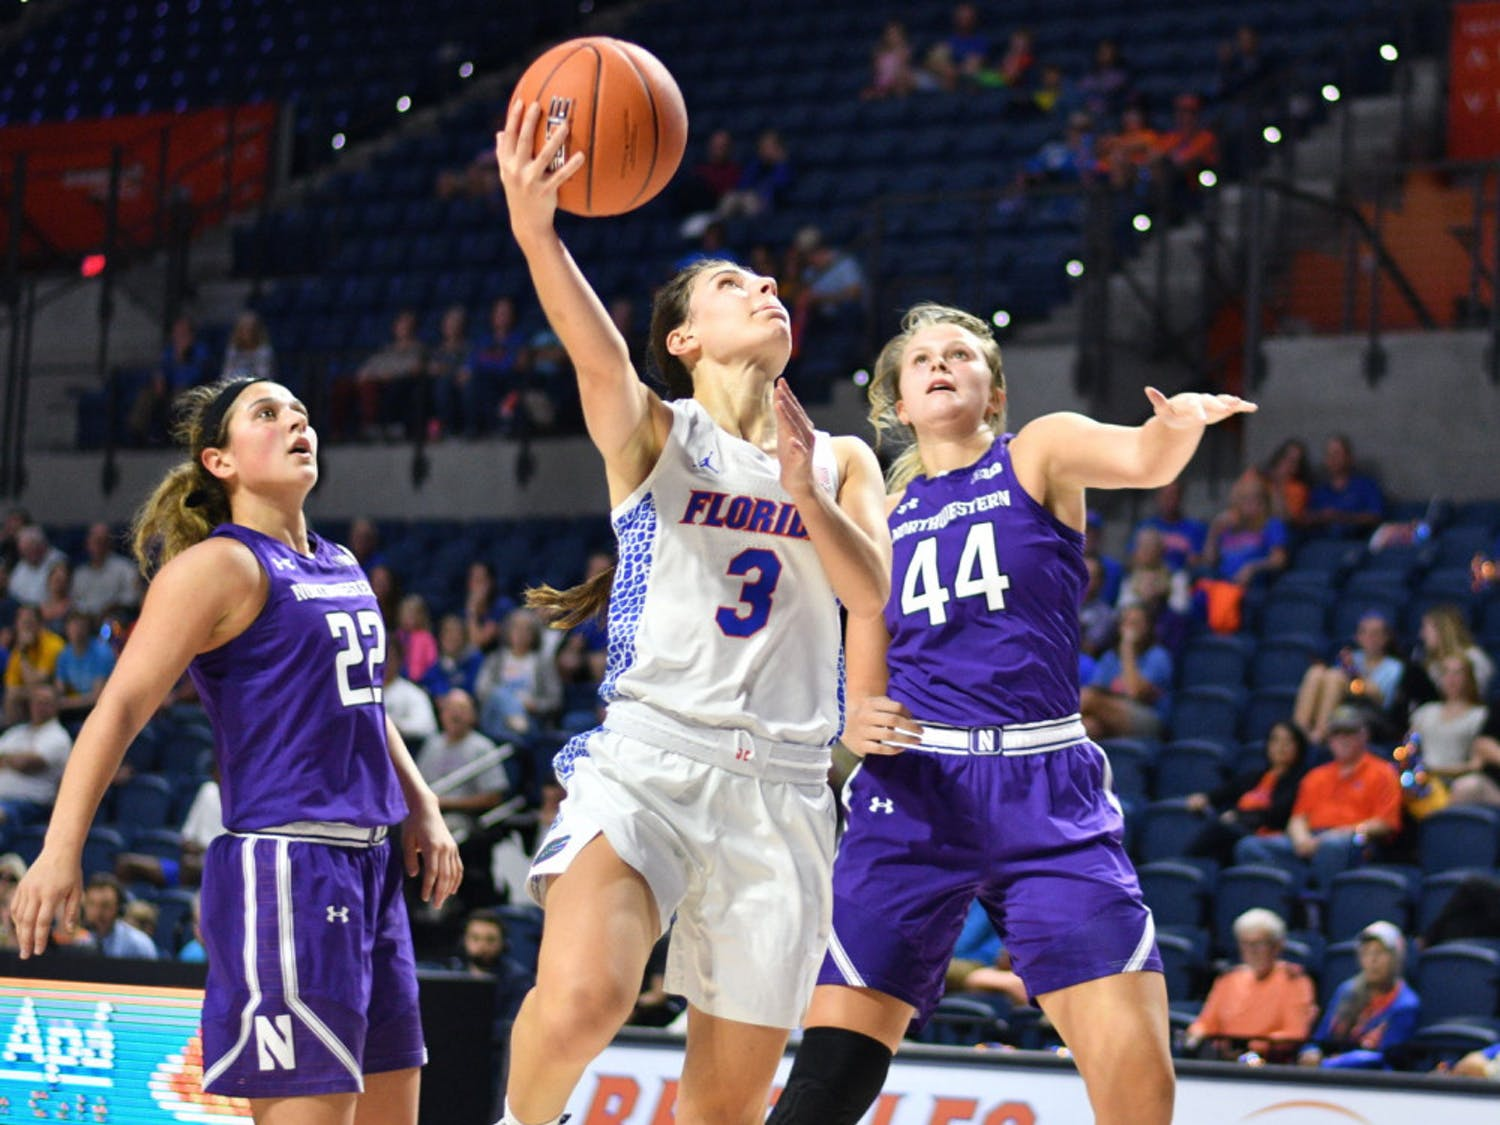 Guard Funda Nakkasoglu is the SEC's second-leading scorer, and she contributed a team-high 16 points as well as two rebounds and a steal in the Gators 56-53 loss to UNLV.